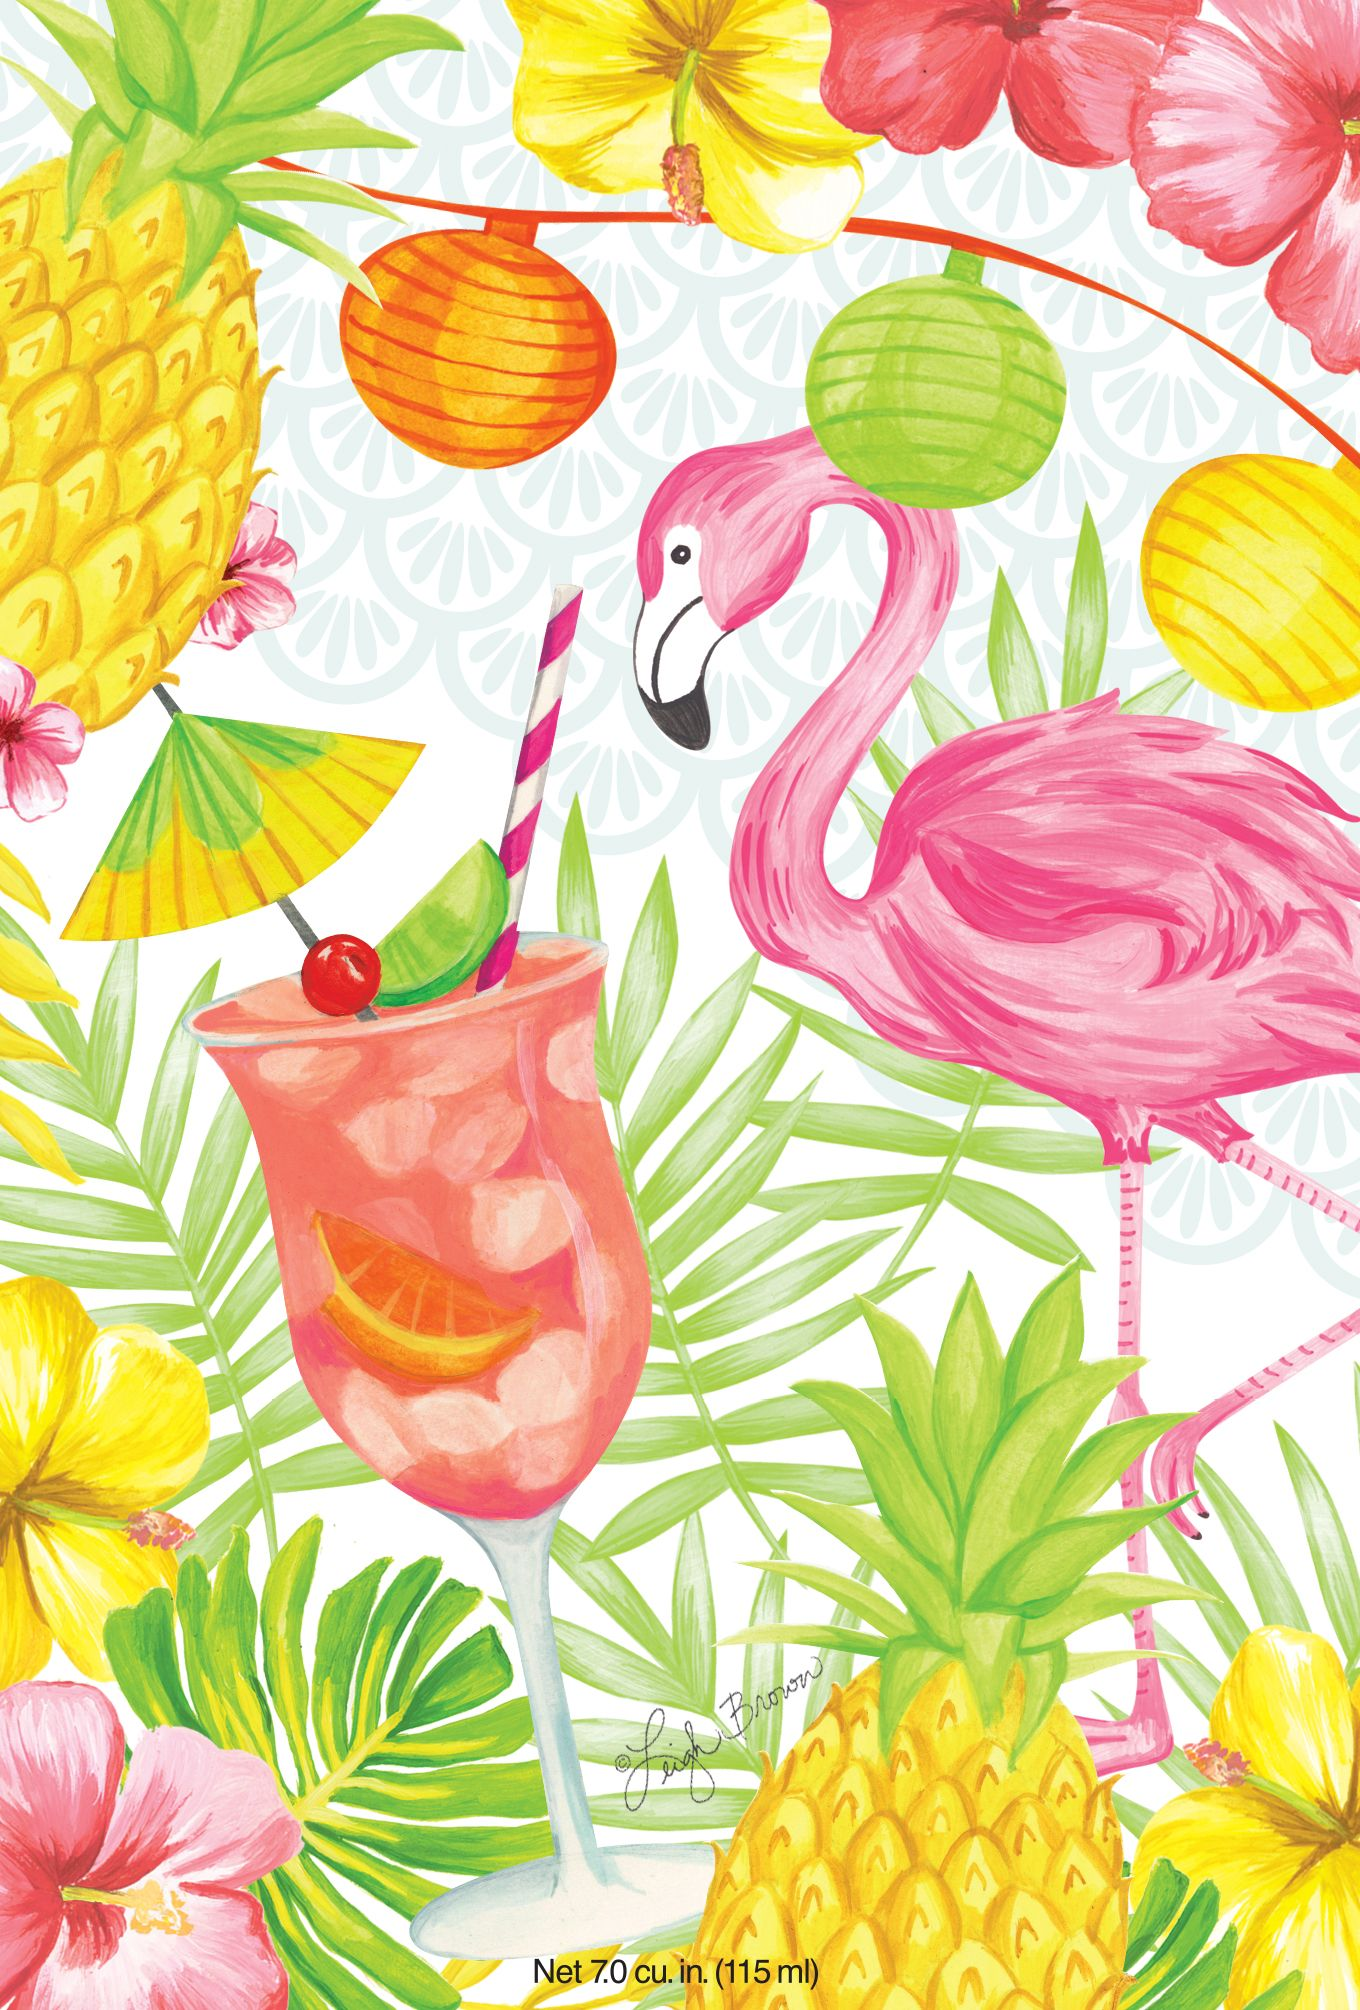 Flamingo Party Refreshing Cocktail Of Chilled Strawberries Lemons And Tropical Fruit 2 50 With Images Flamingo Wallpaper Tropical Wallpaper Iphone Wallpaper